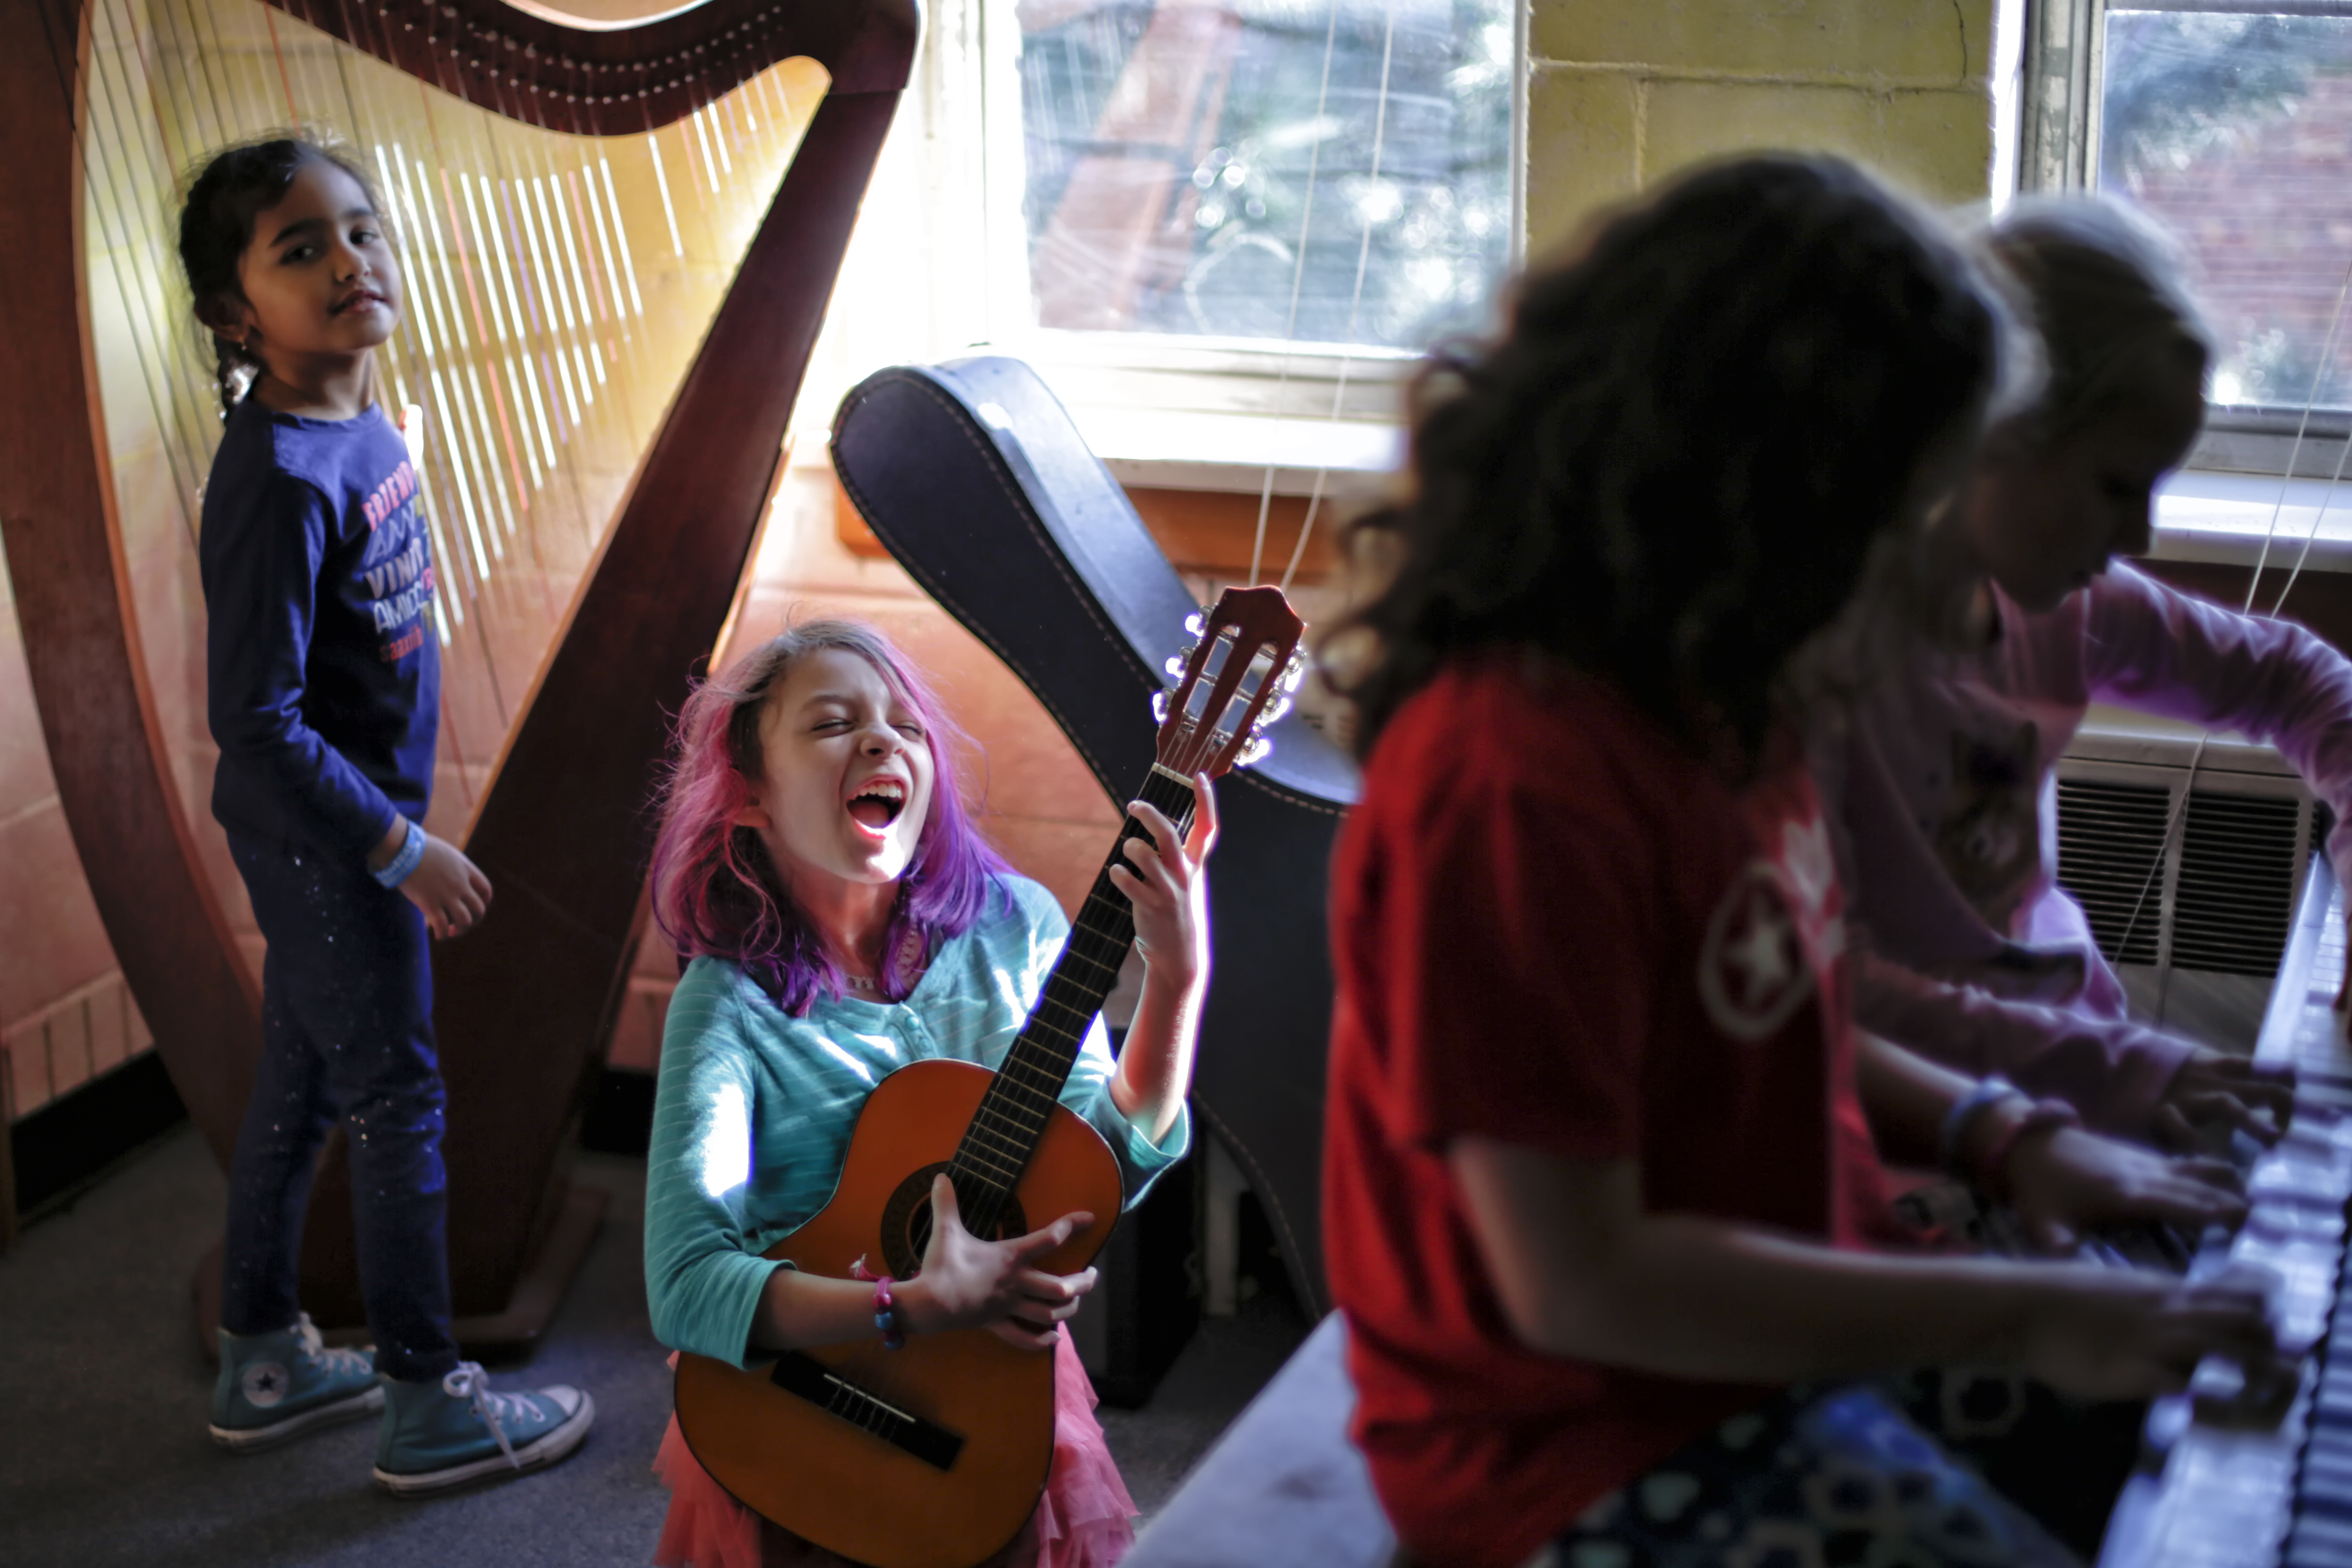 Students at Tallgrass Sudbury School play music. (Martin Hernandez Rosas/Courtesy of Tallgrass Sudbury School)